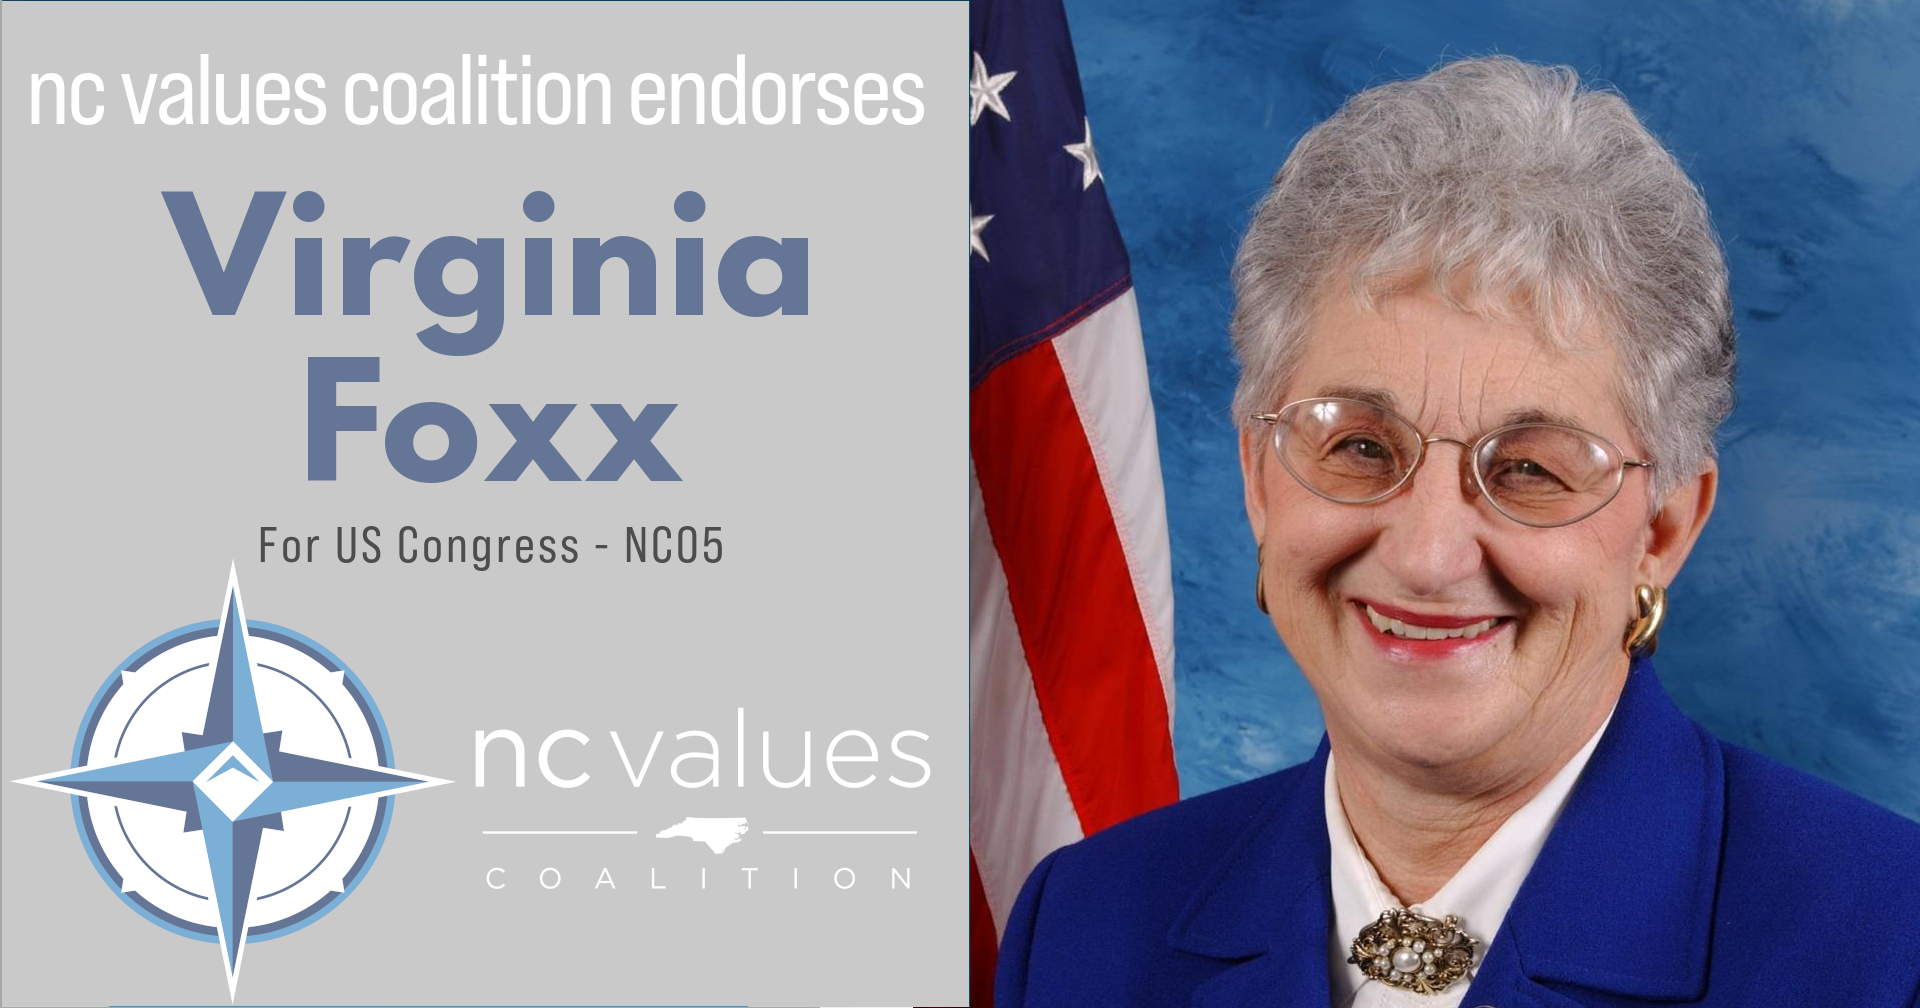 Virginia Fox for Congress in NC05